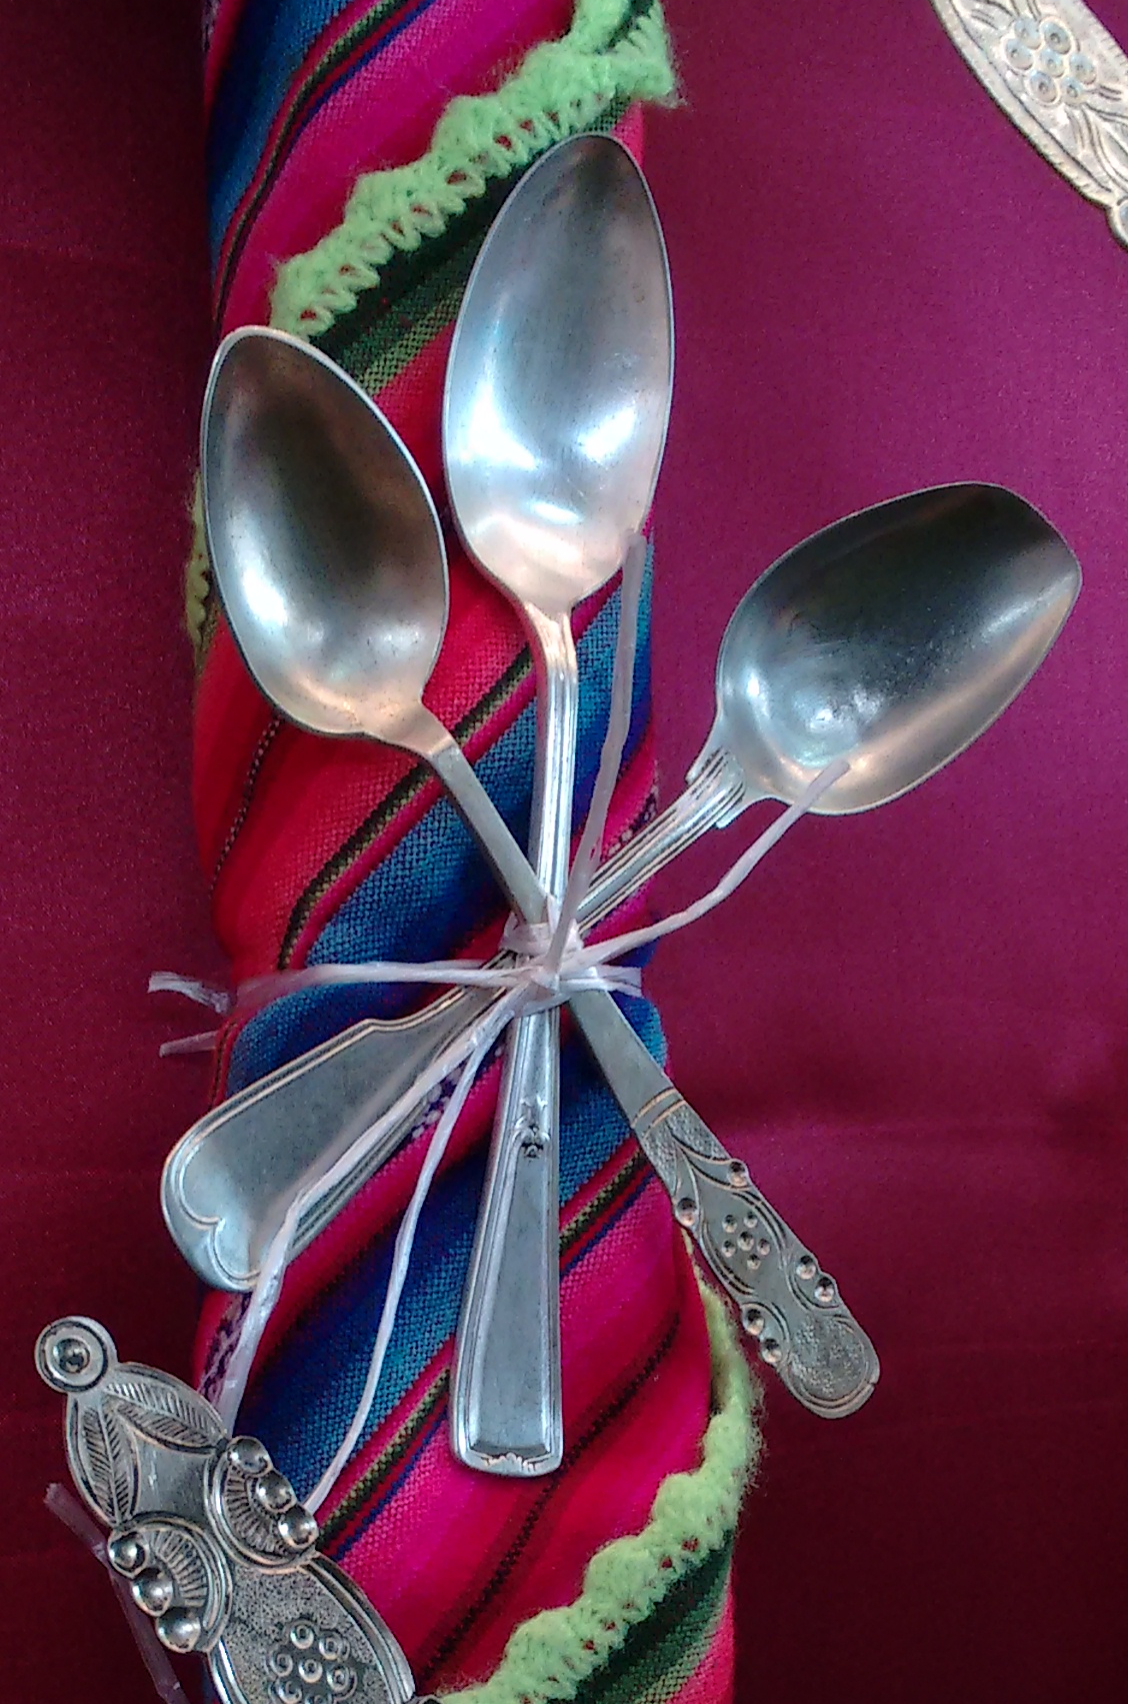 Spoons decorating the colorful Arco de Plata that adorned the altar to San Juan.